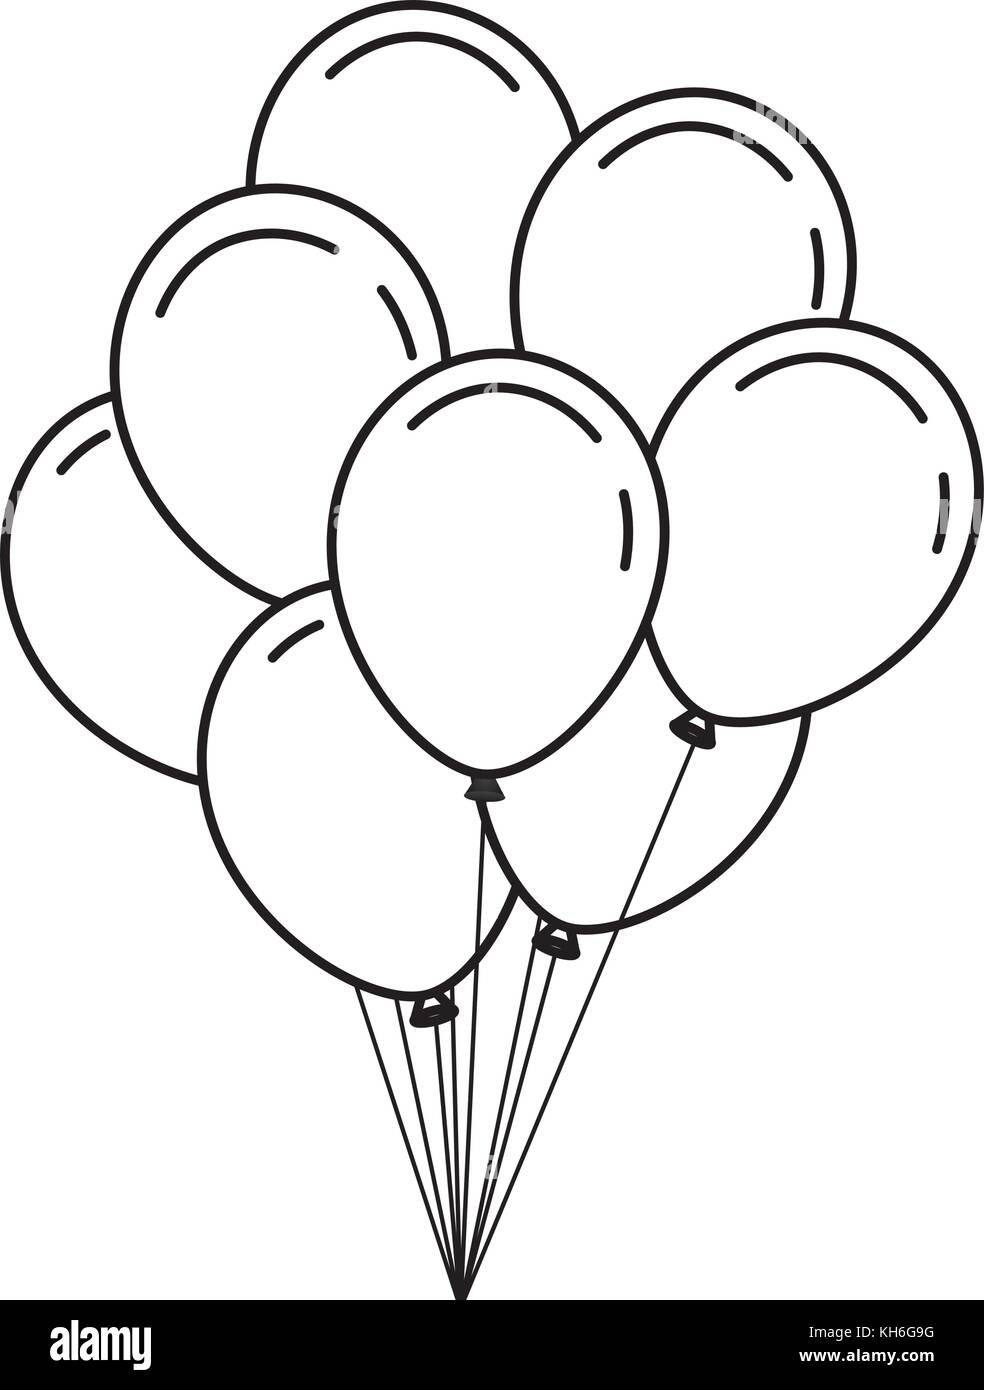 Bunch Of Birthday Balloons For Party And Celebrations